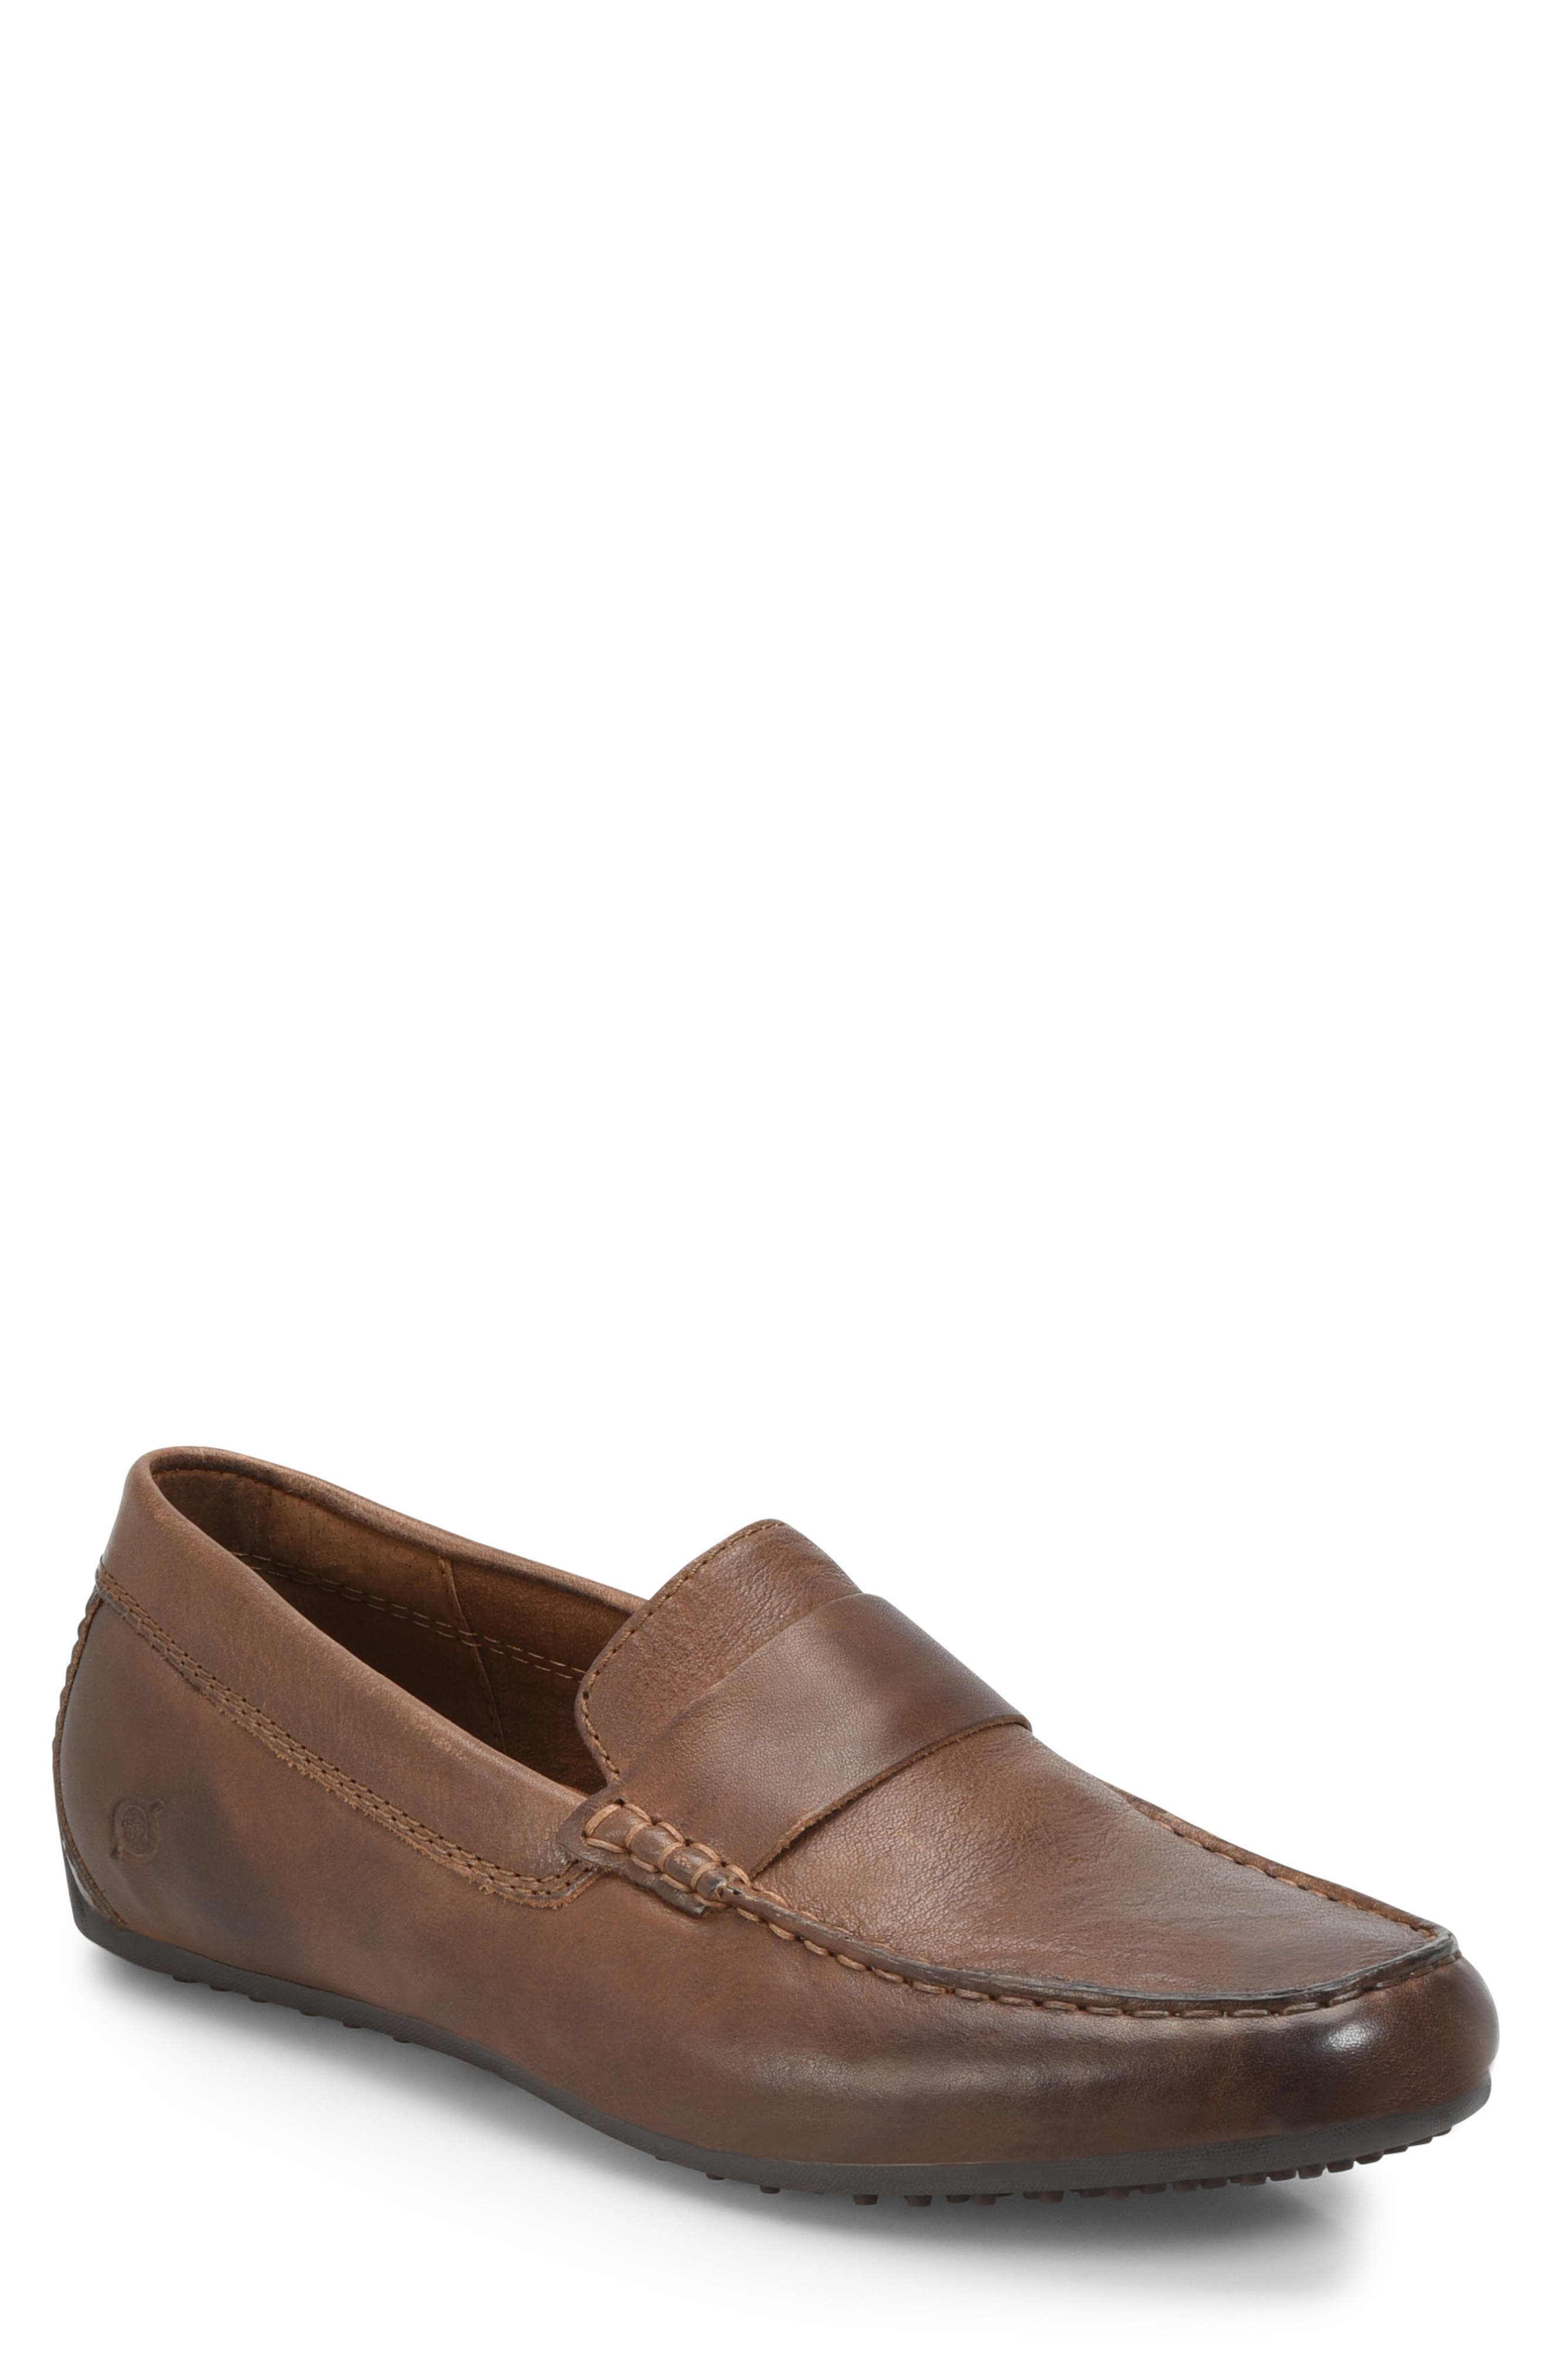 Ratner Driving Loafer,                             Main thumbnail 1, color,                             BROWN LEATHER